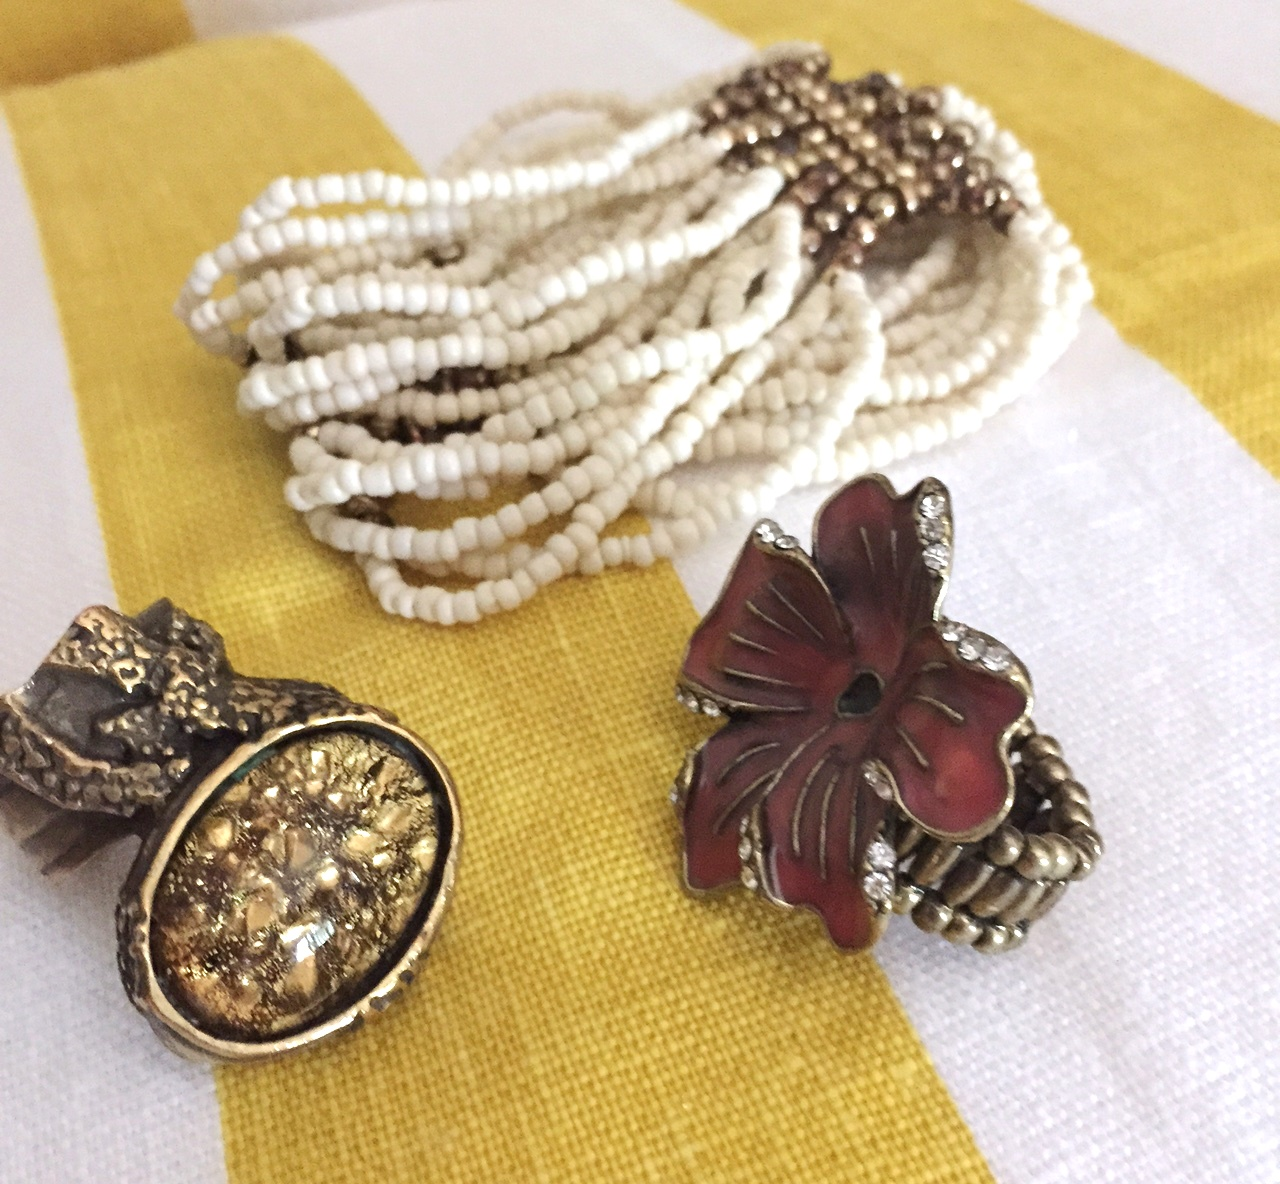 Texture and a gold tone on all the standout separate pieces help to tie the look together.